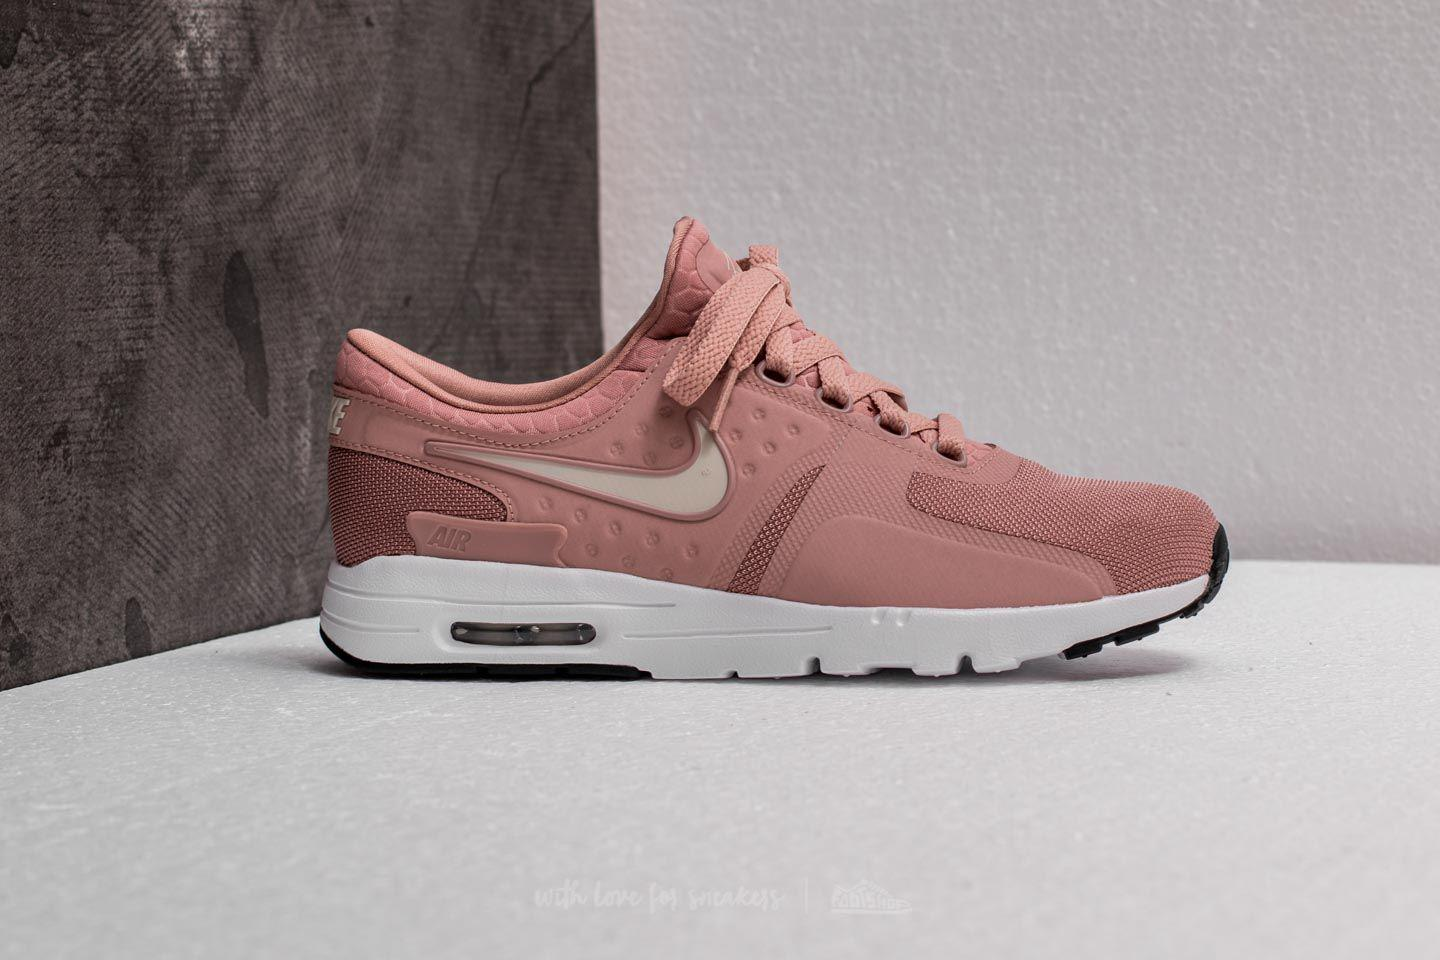 6b2116fa6d8 ... spain lyst nike air max zero w particle pink light bone black in pink  5e77b 55a9b